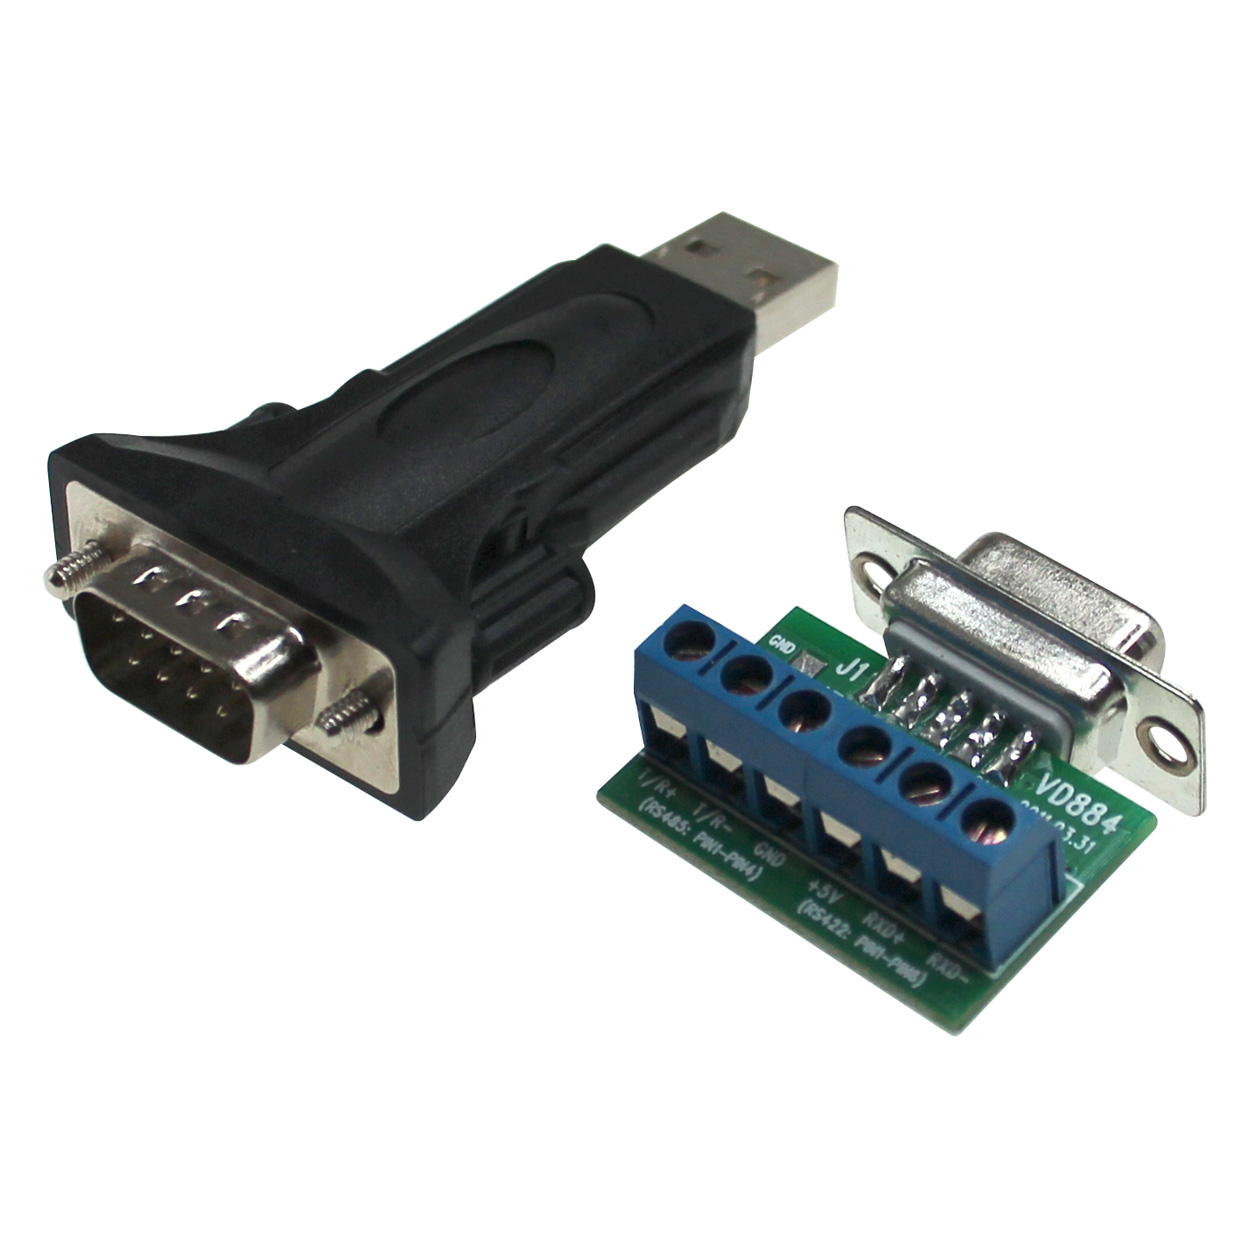 Usb 20 male to rs422 rs485 converter adapter pi manufacturing usb 20 male to rs422 rs485 converter adapter sciox Gallery